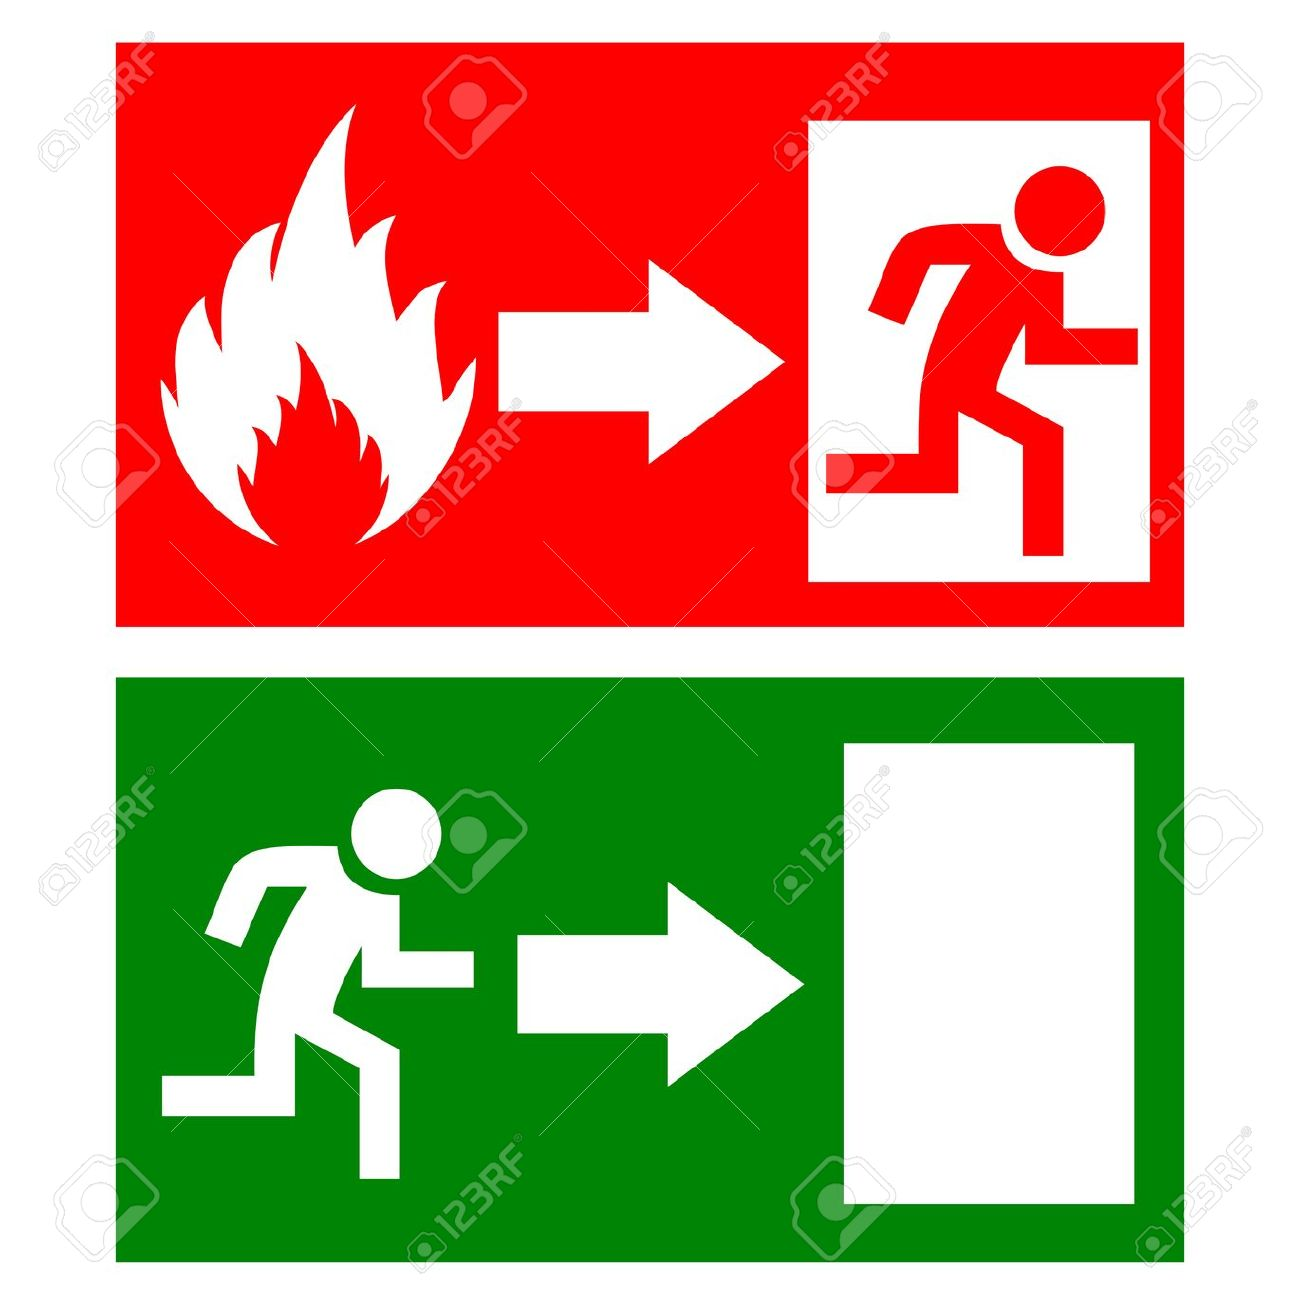 Fire Exit Signs Royalty Free Cliparts, Vectors, And Stock.